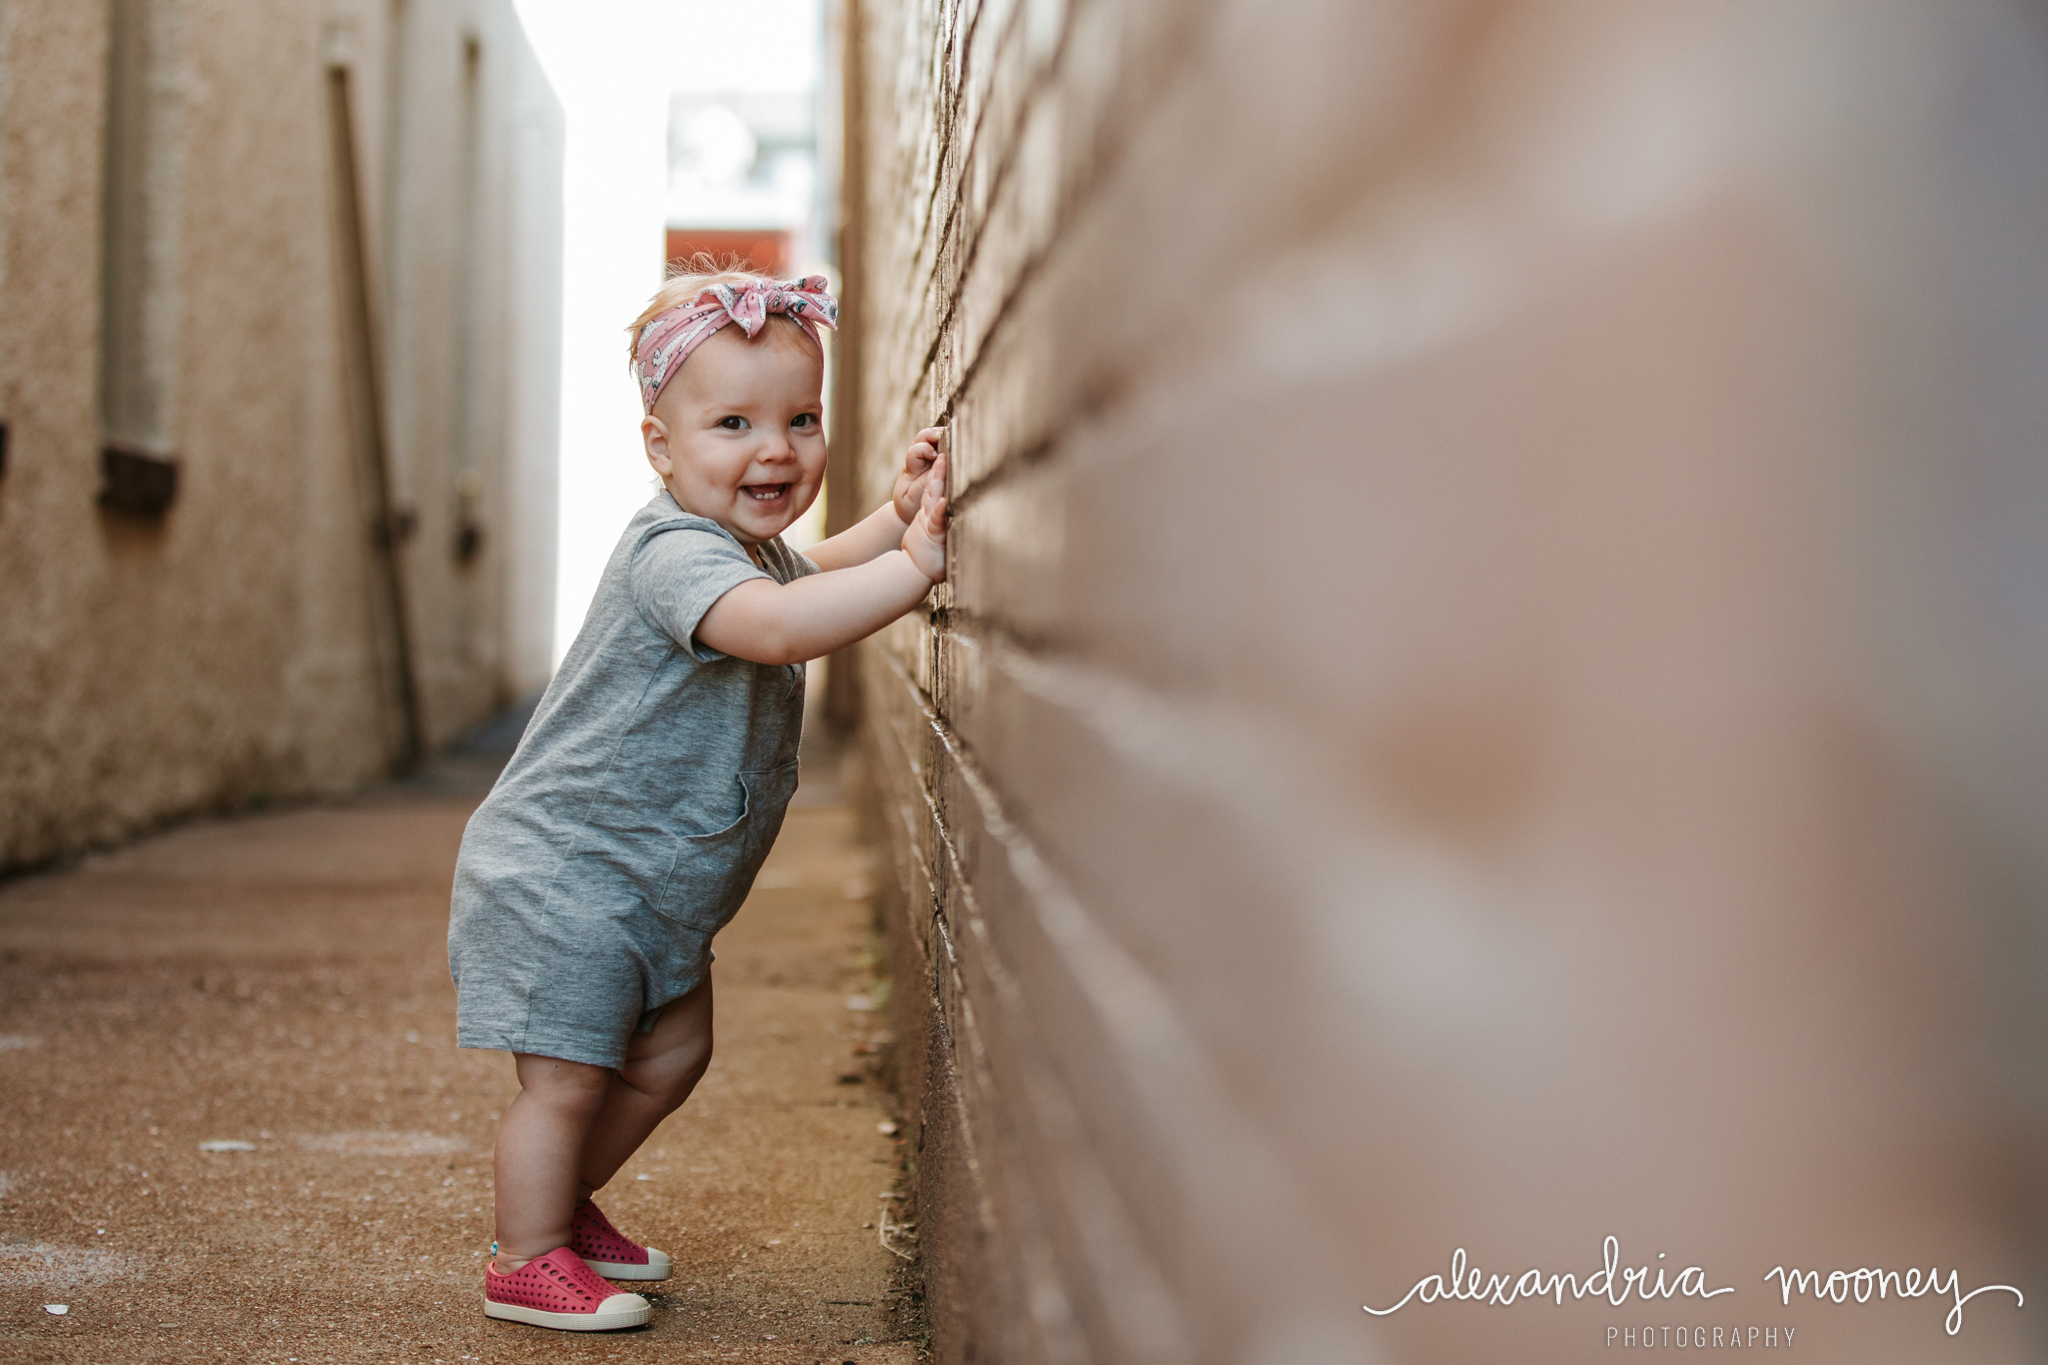 AnnieintheAlley_Watermarked-6.jpg